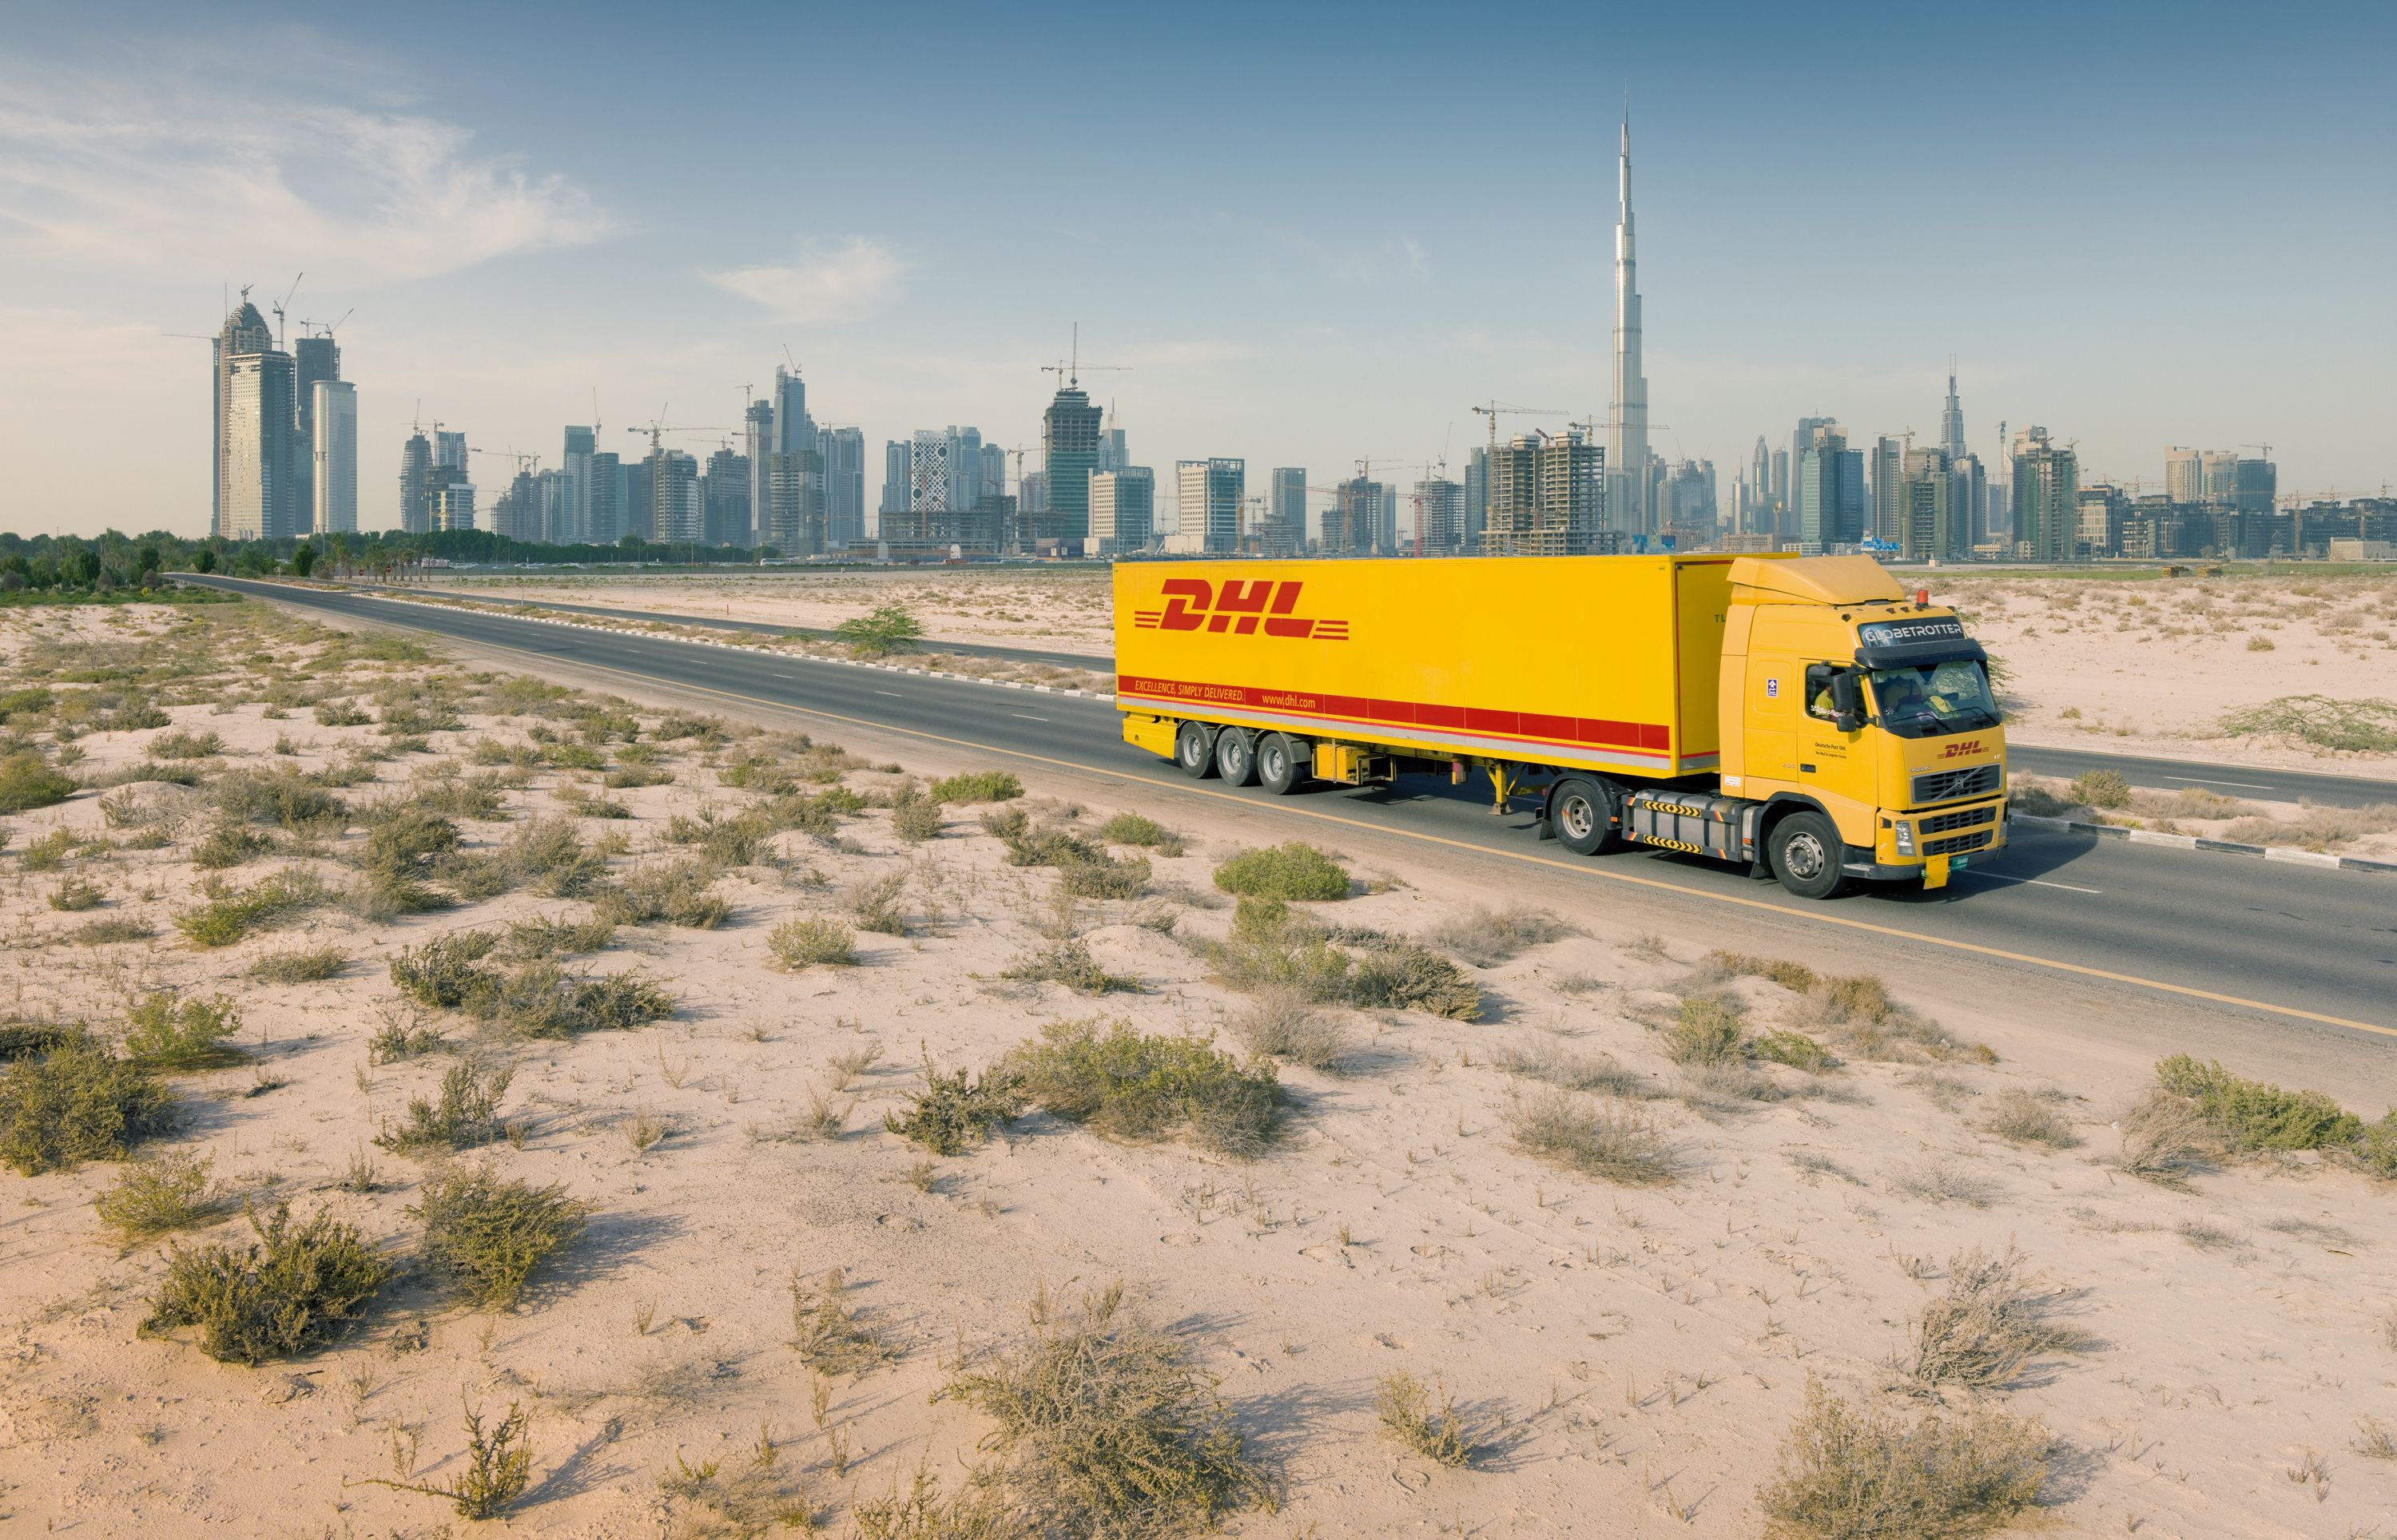 DHL is present in over 220 countries and territories across the globe